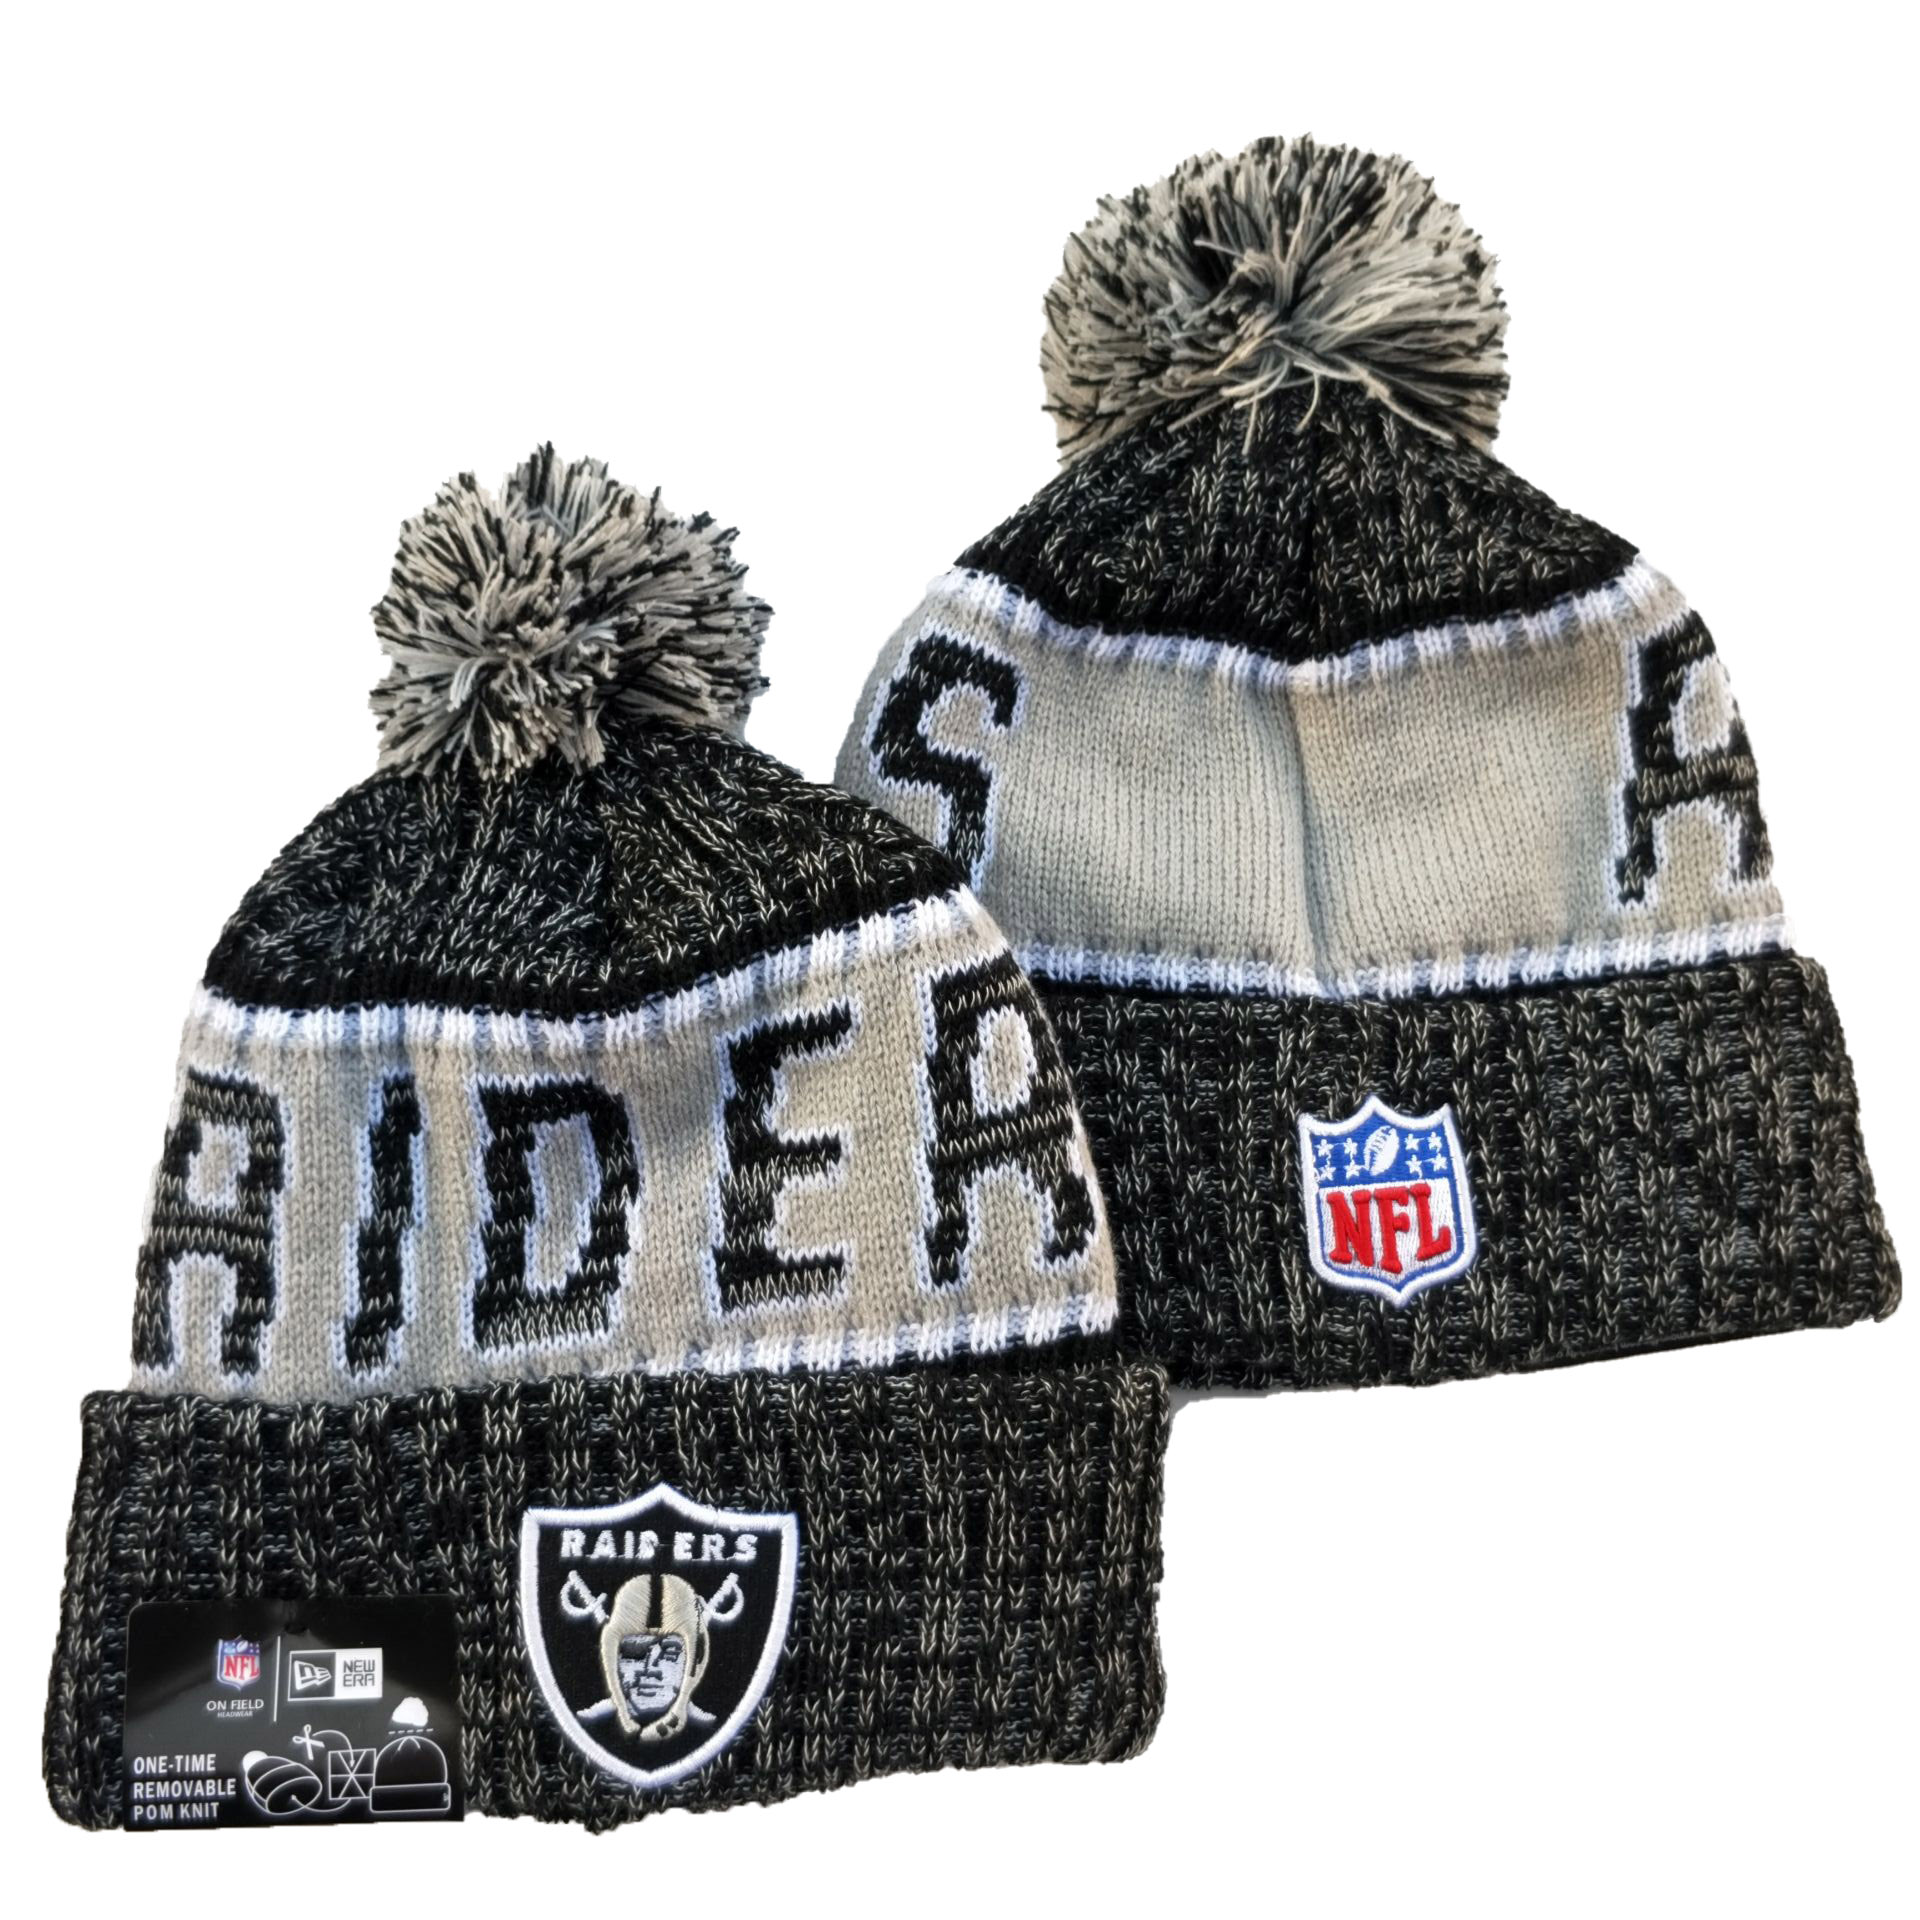 Las Vegas Raiders Knit Hats 069